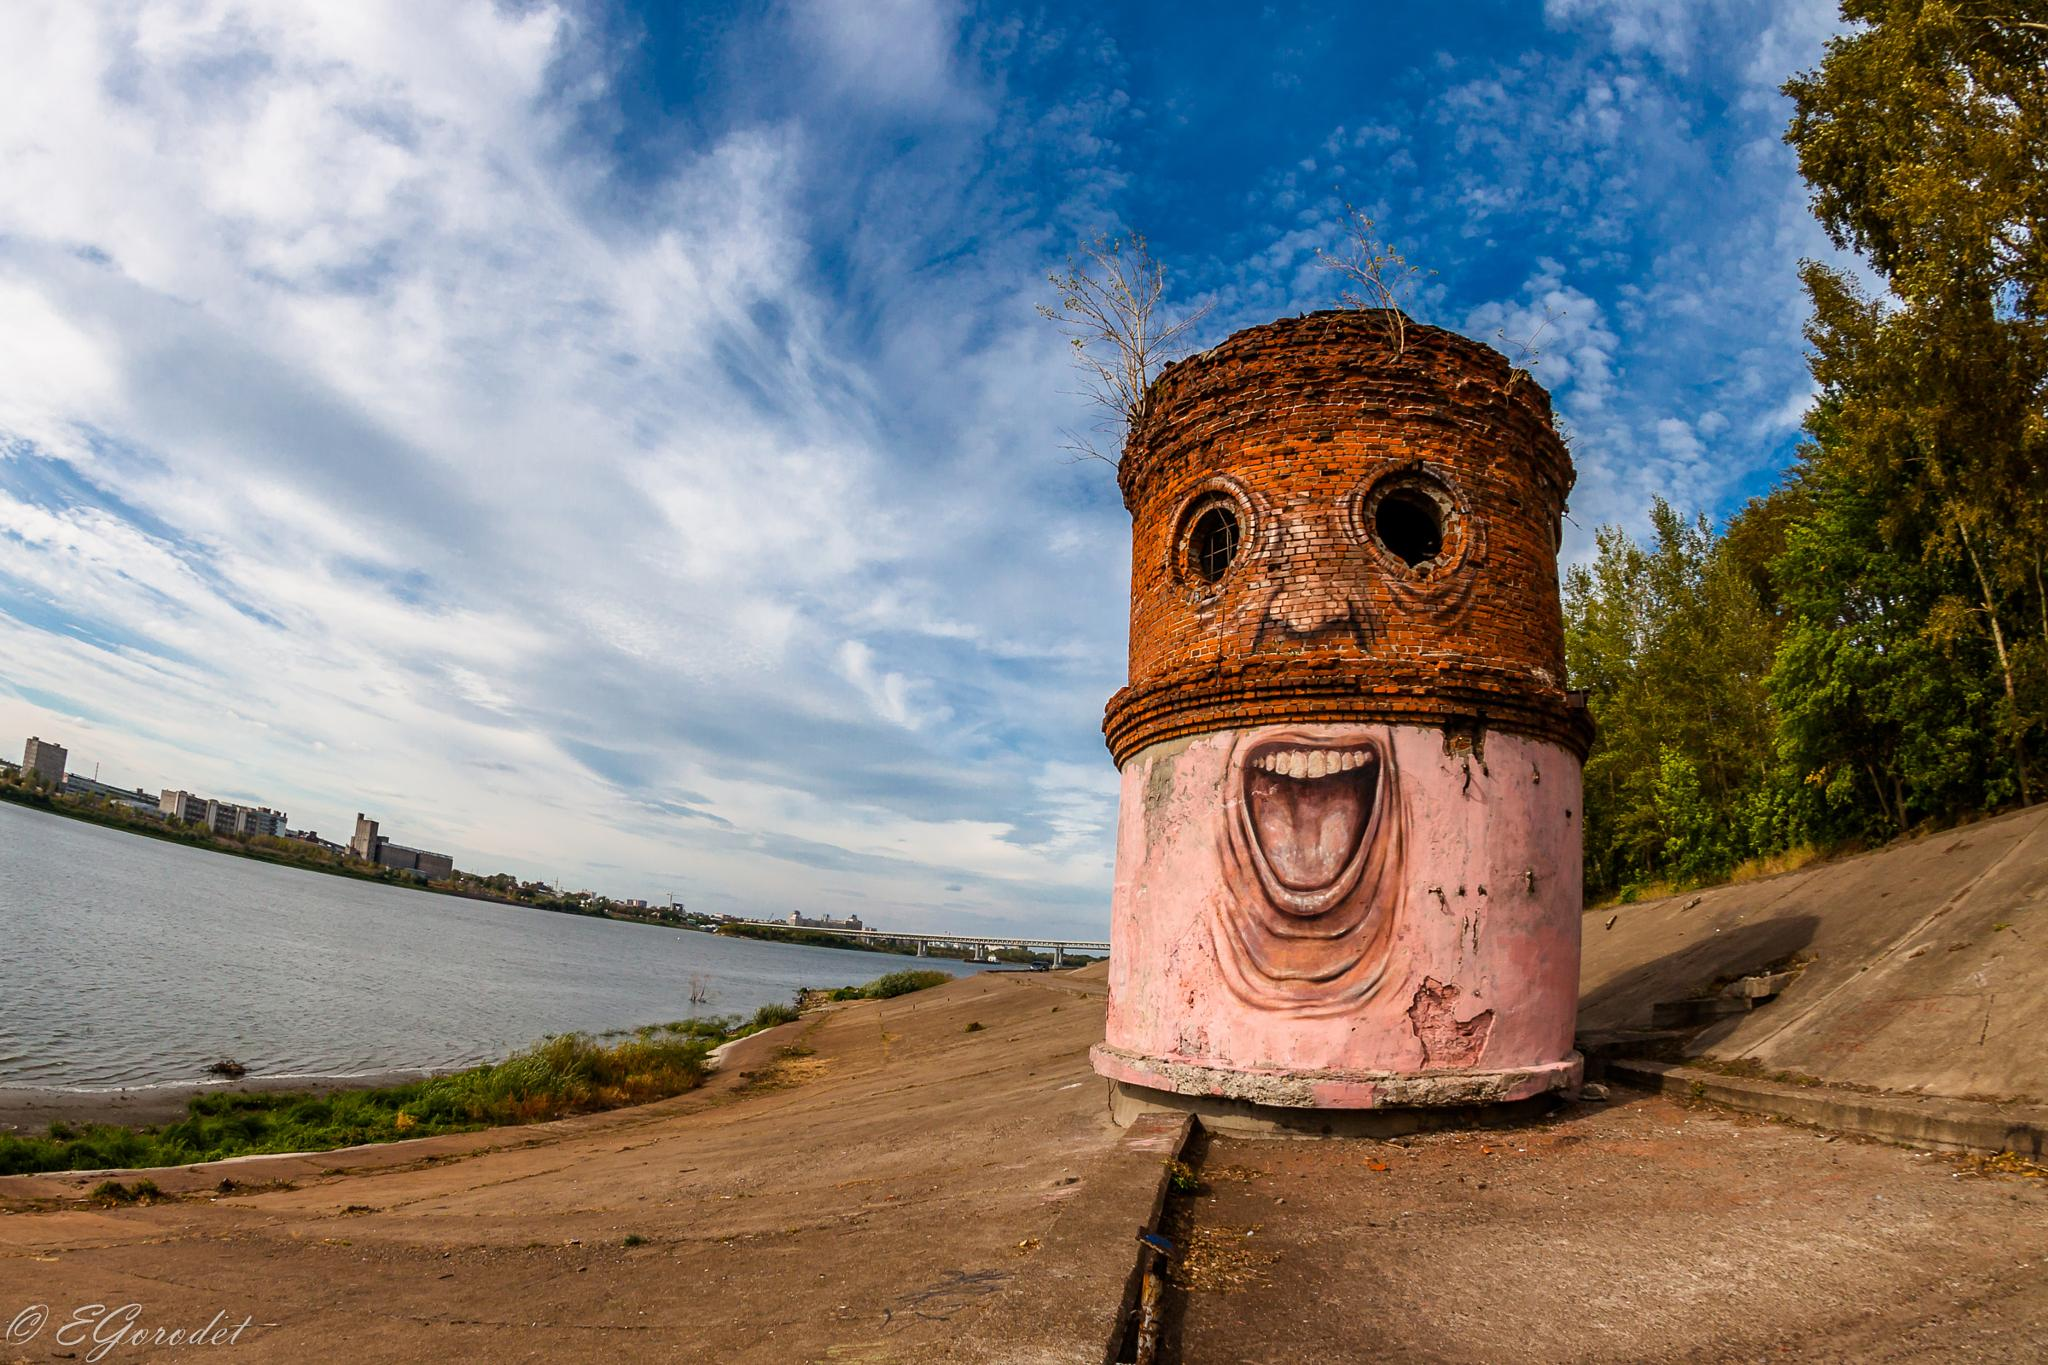 Laughing tower by Evgeny Gorodetsky